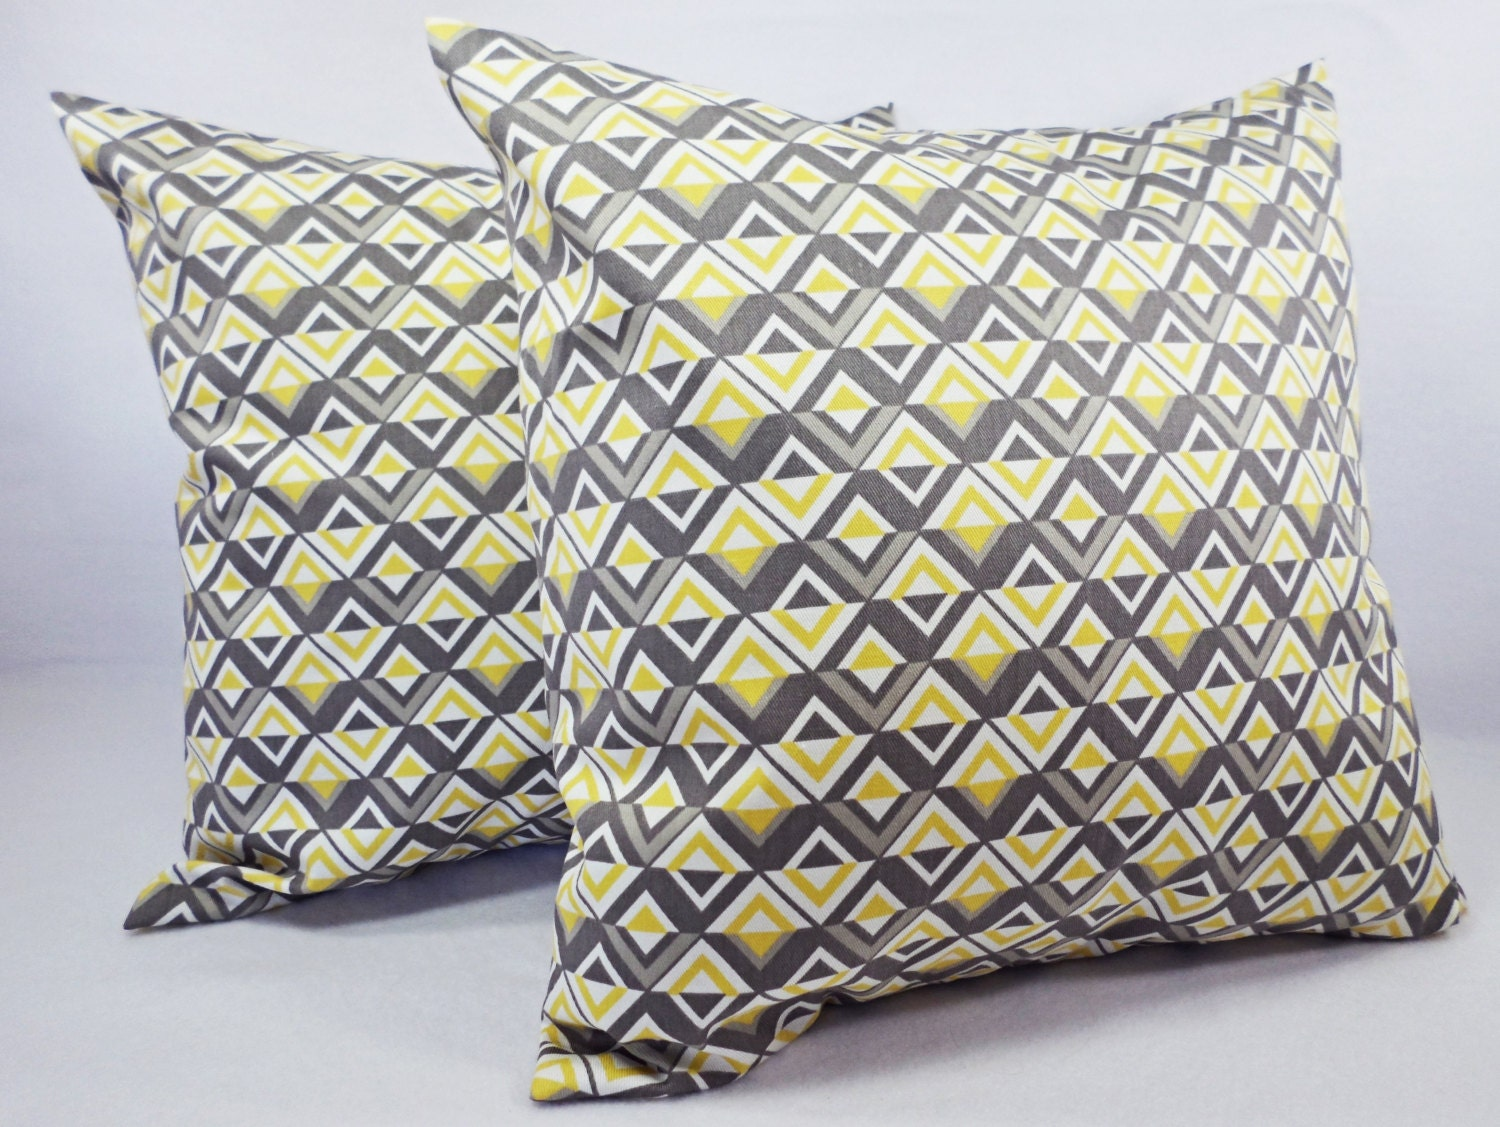 Throw Pillow Covers 20 X 20 : Items similar to 20 x 20 Throw Pillow Covers - Two Yellow and Grey Throw Pillows - 20 x 20 inch ...